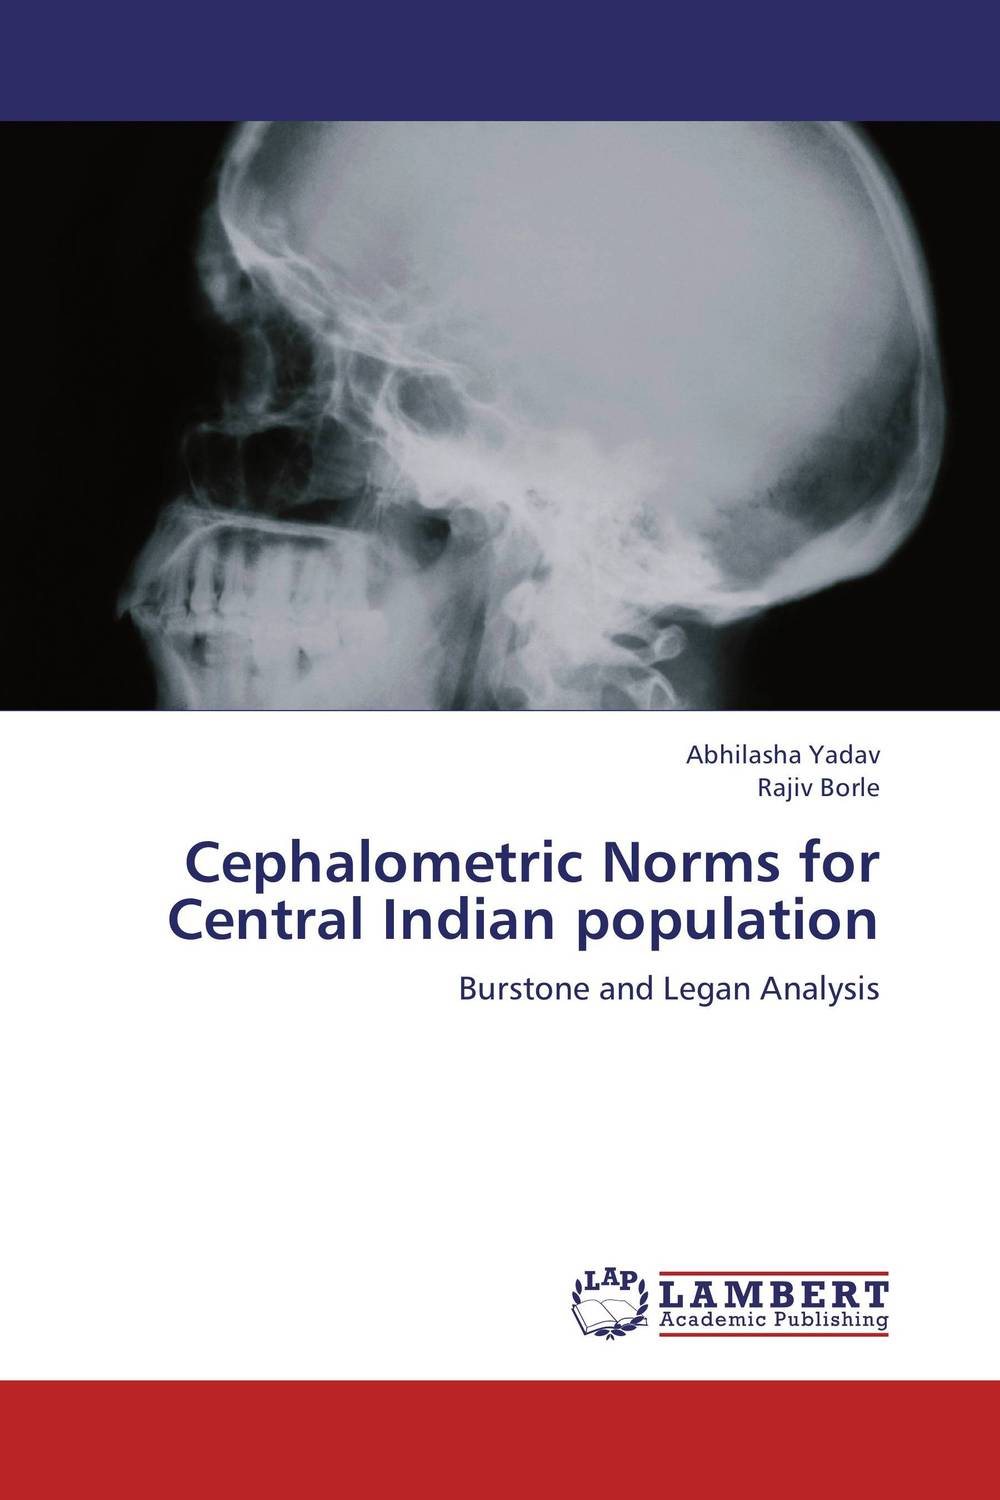 Cephalometric Norms for Central Indian population